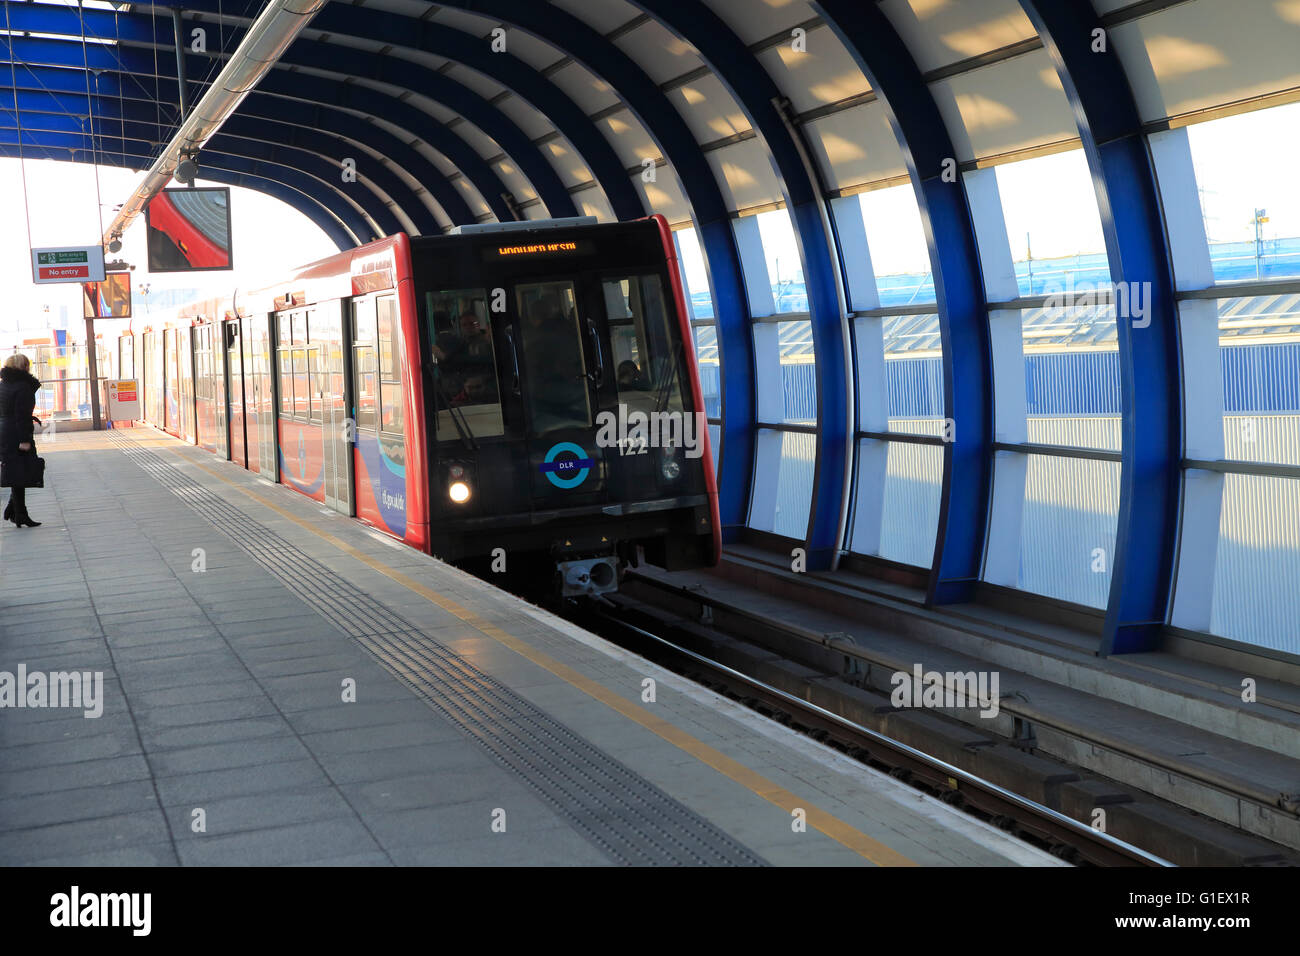 Docklands Light Railway train at City Airport station, London, England, UK - Stock Image